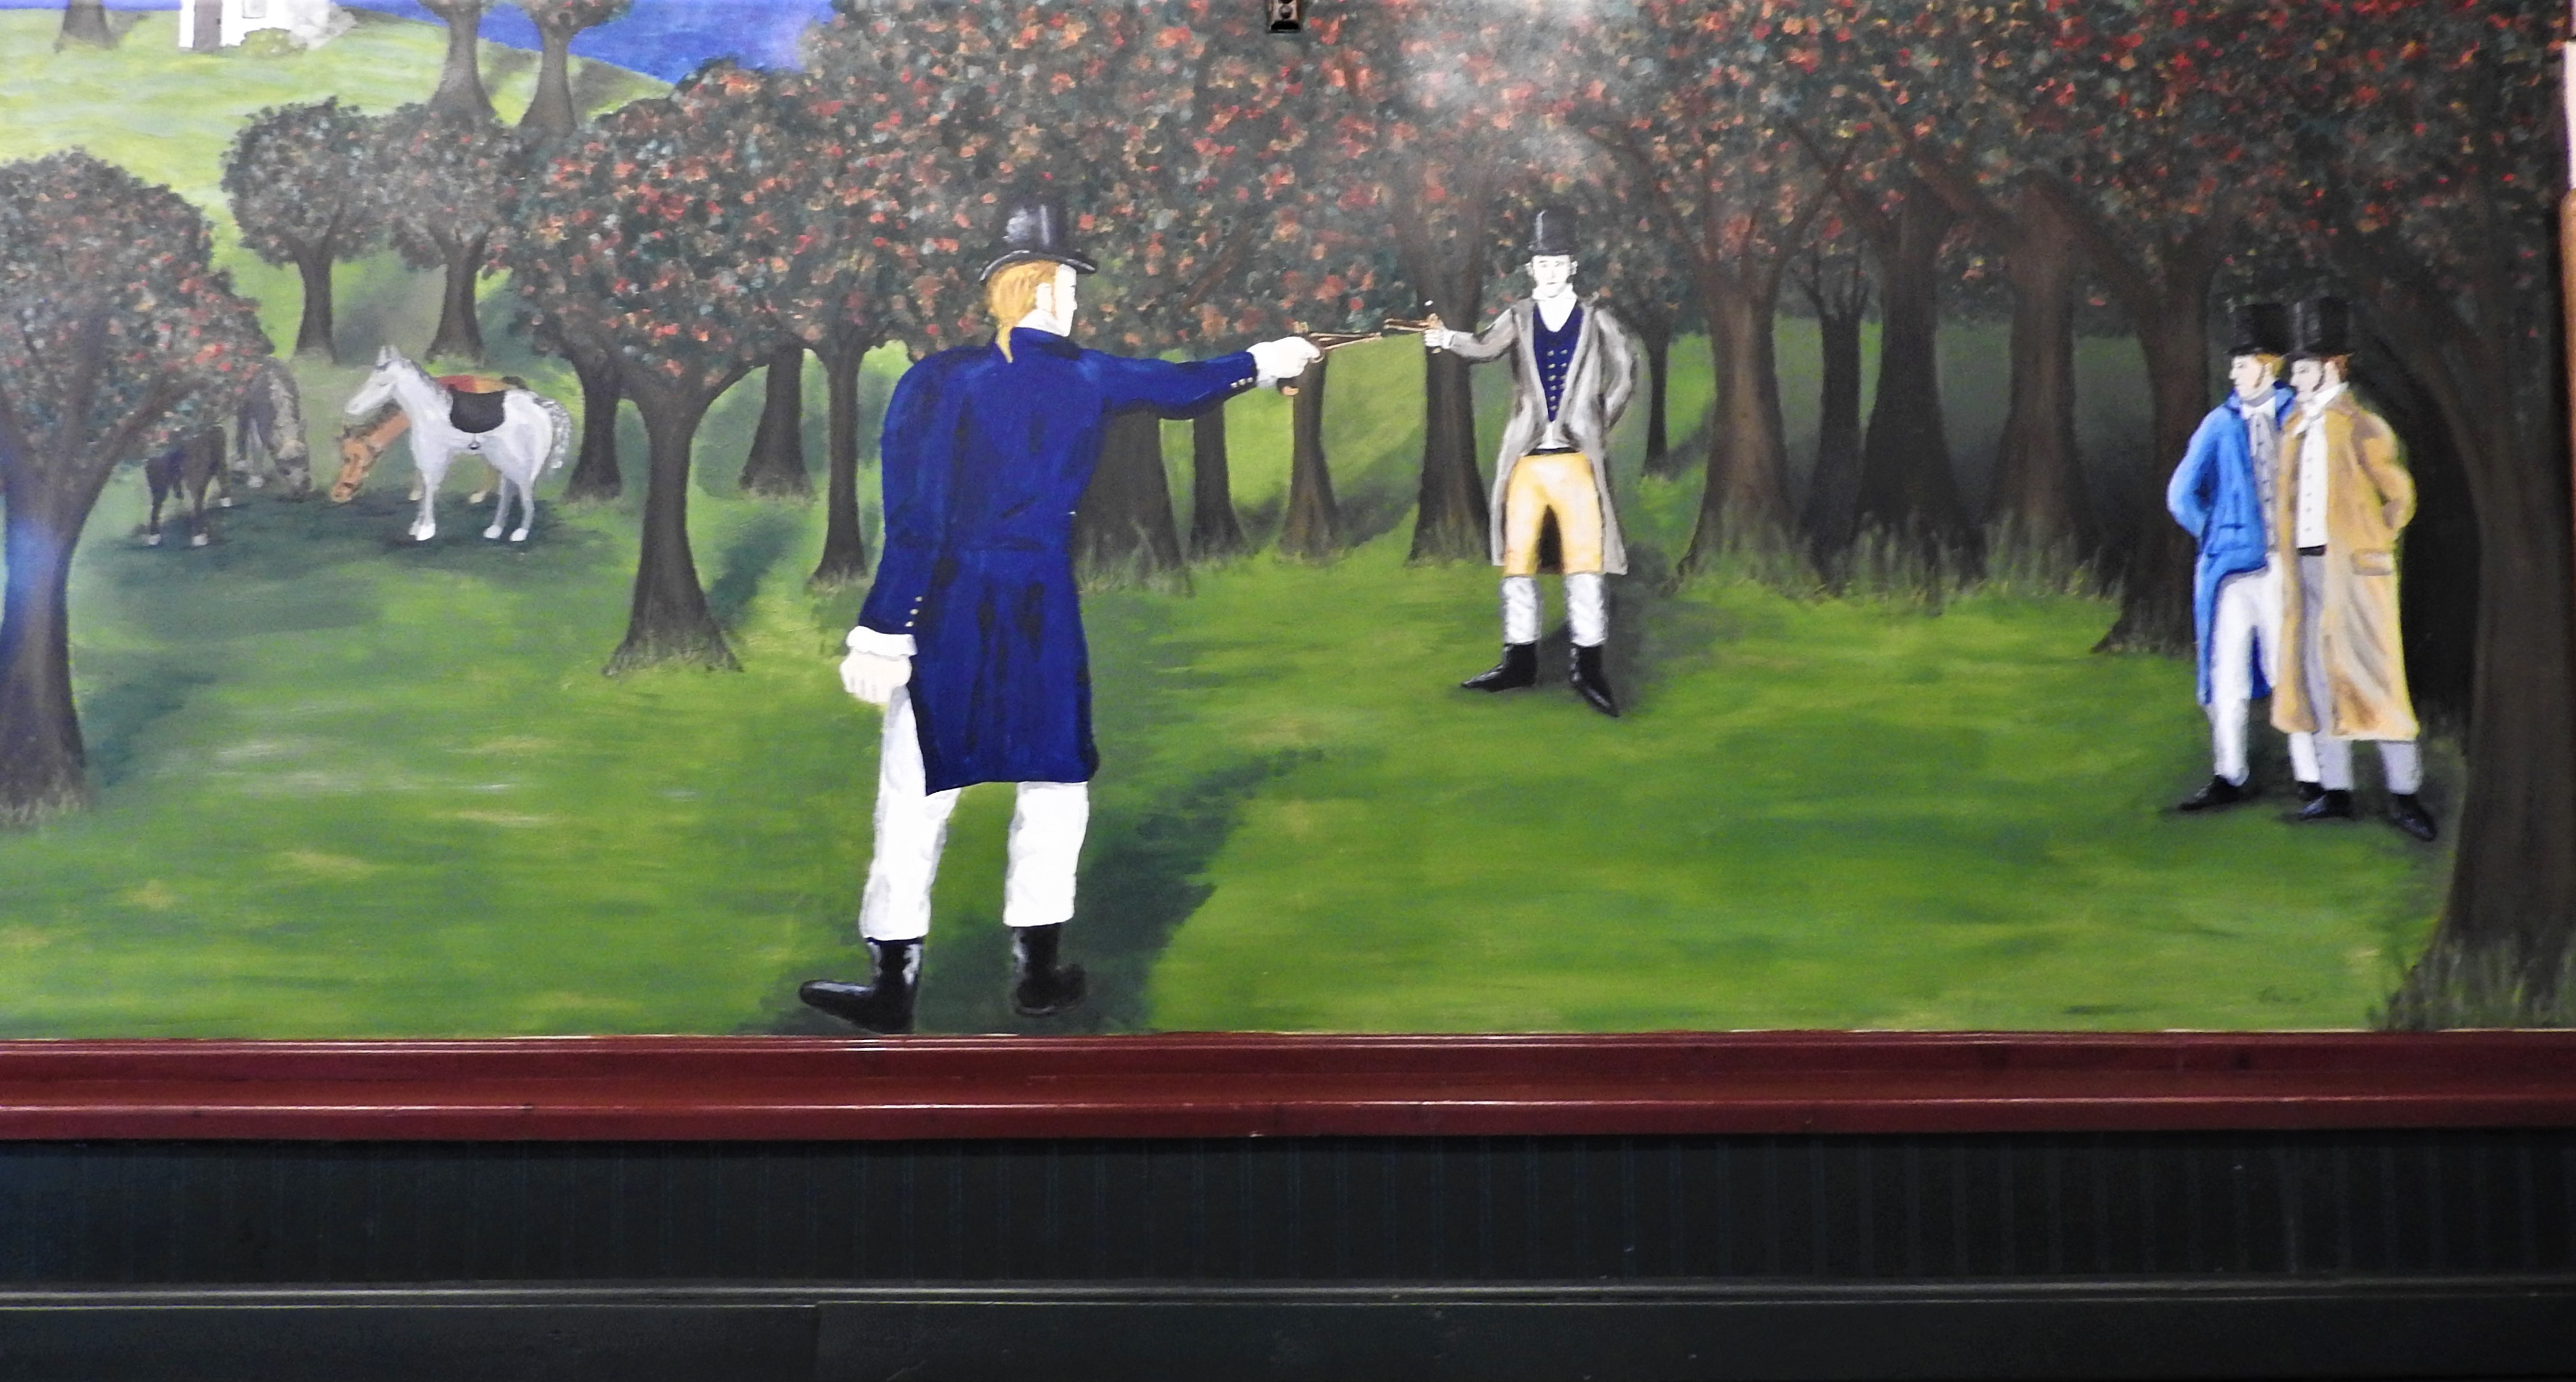 Mural of the Due